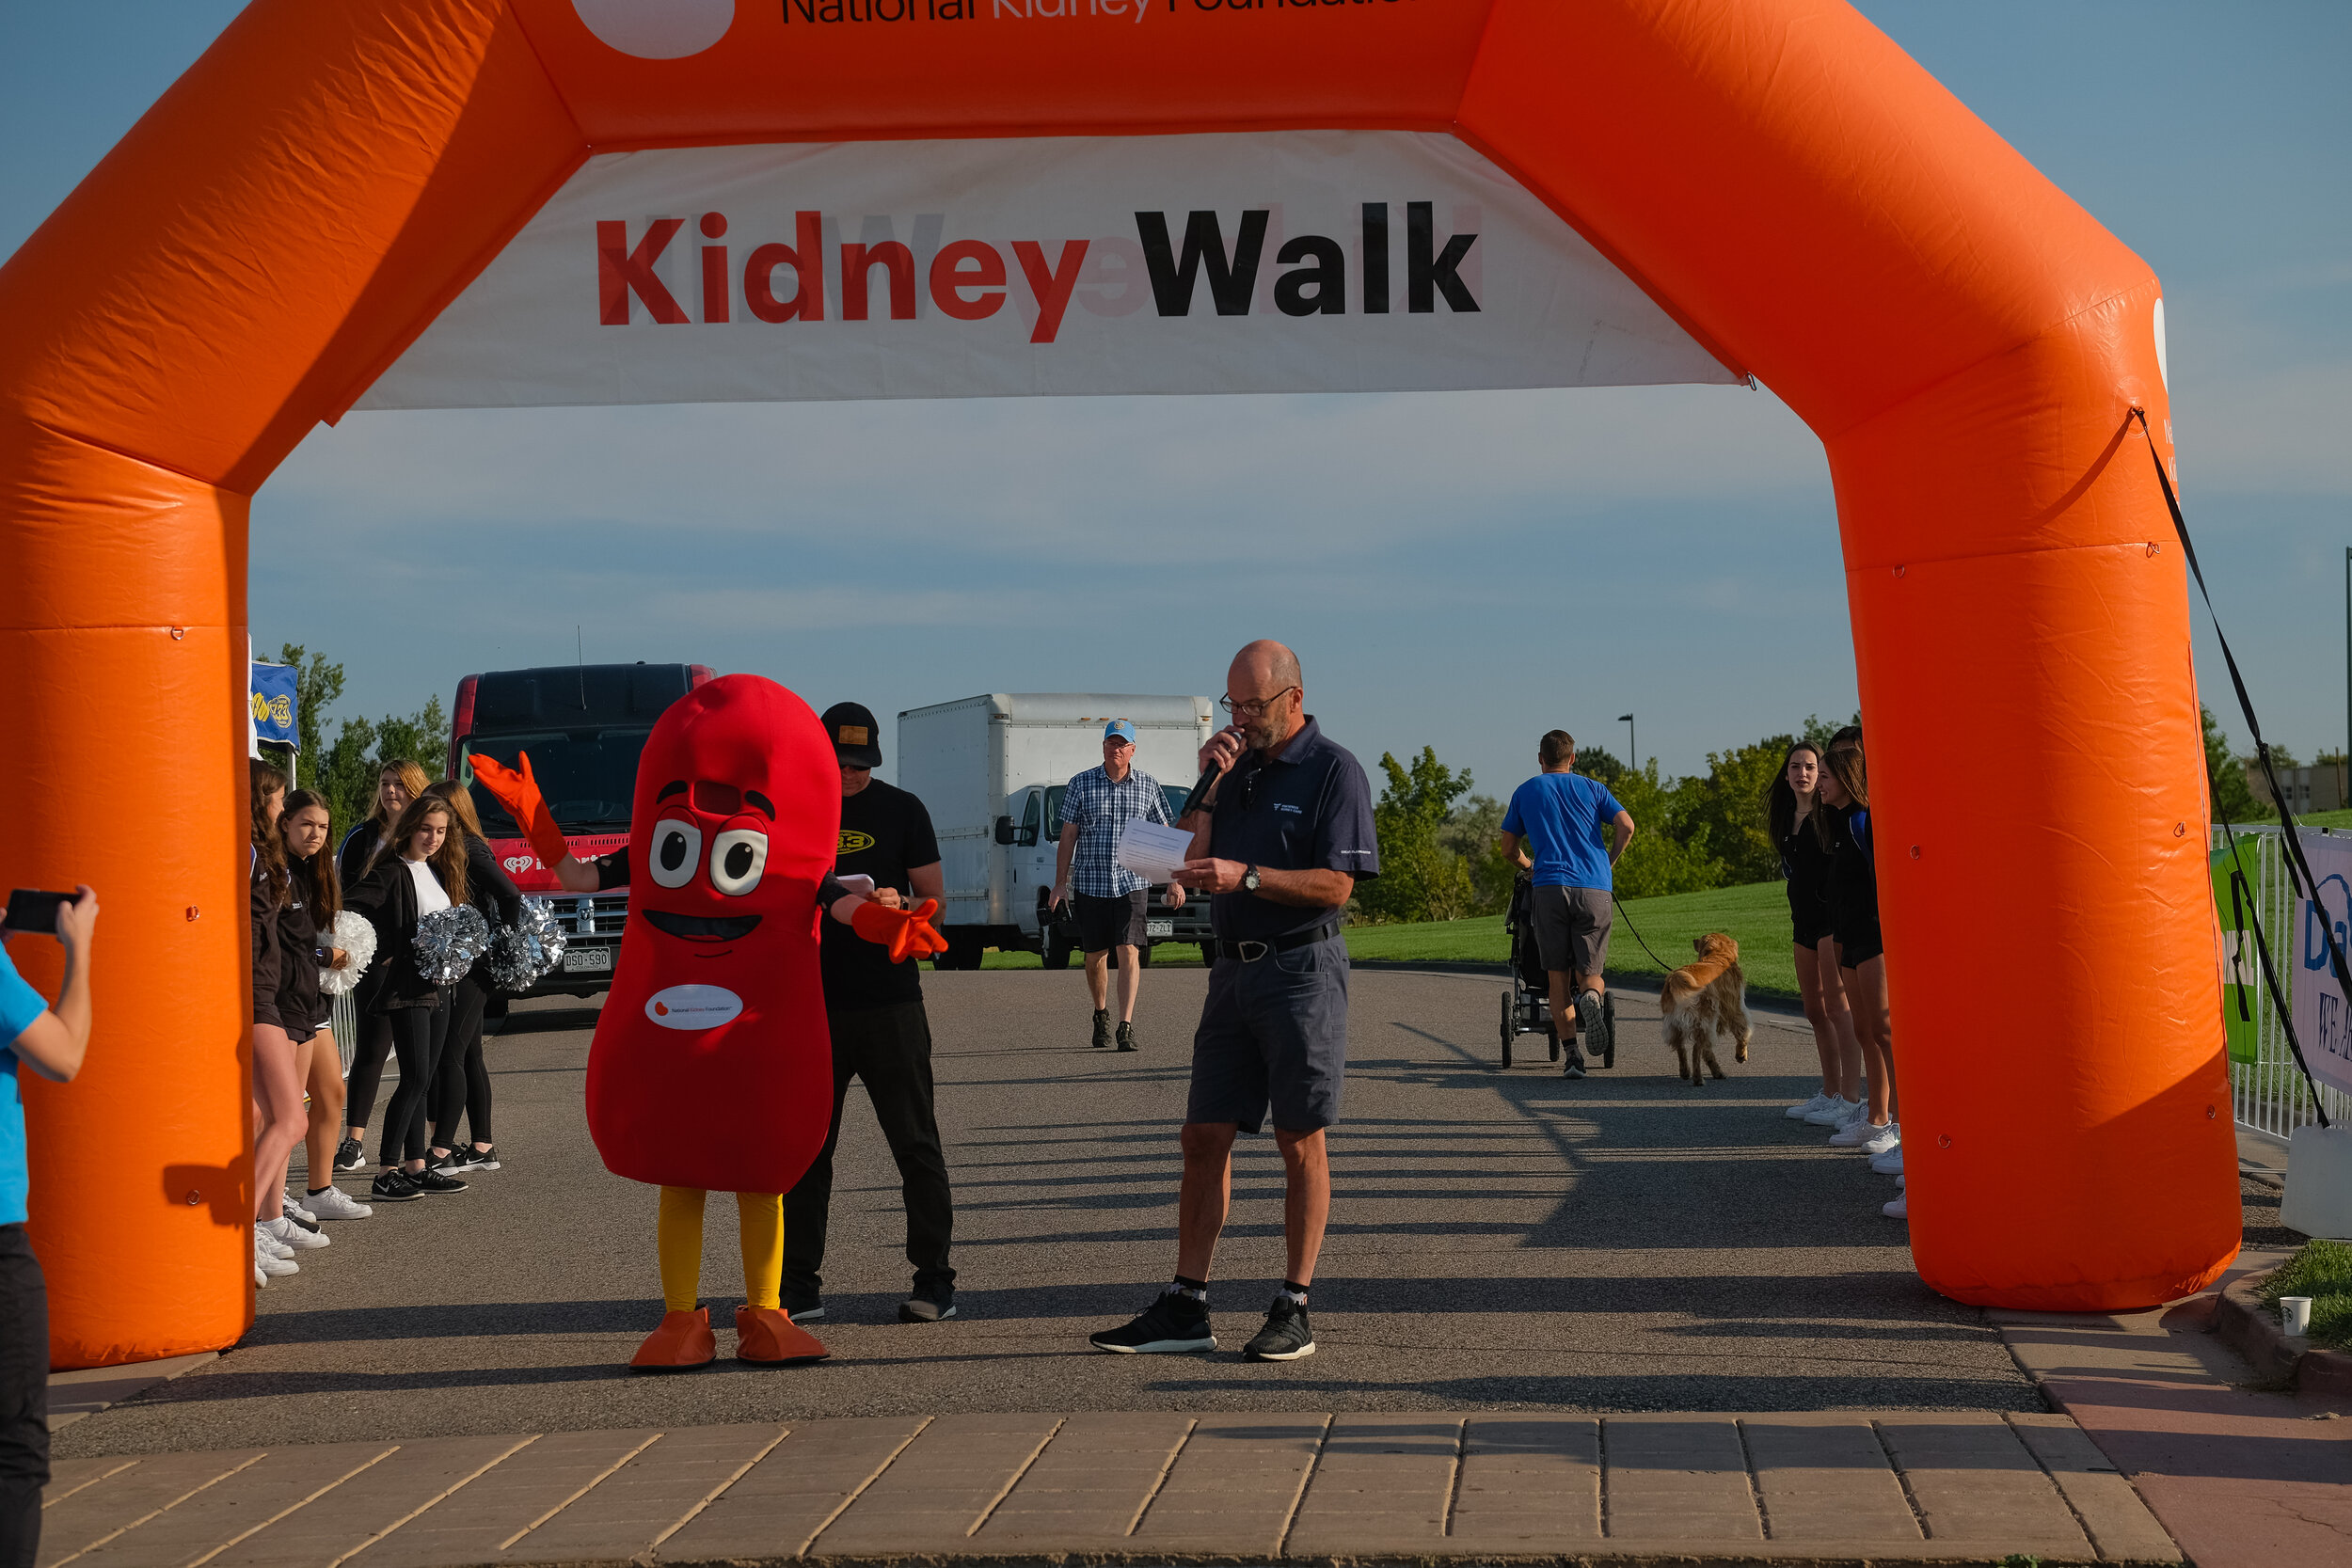 Denver Kidney Walk-56.jpg